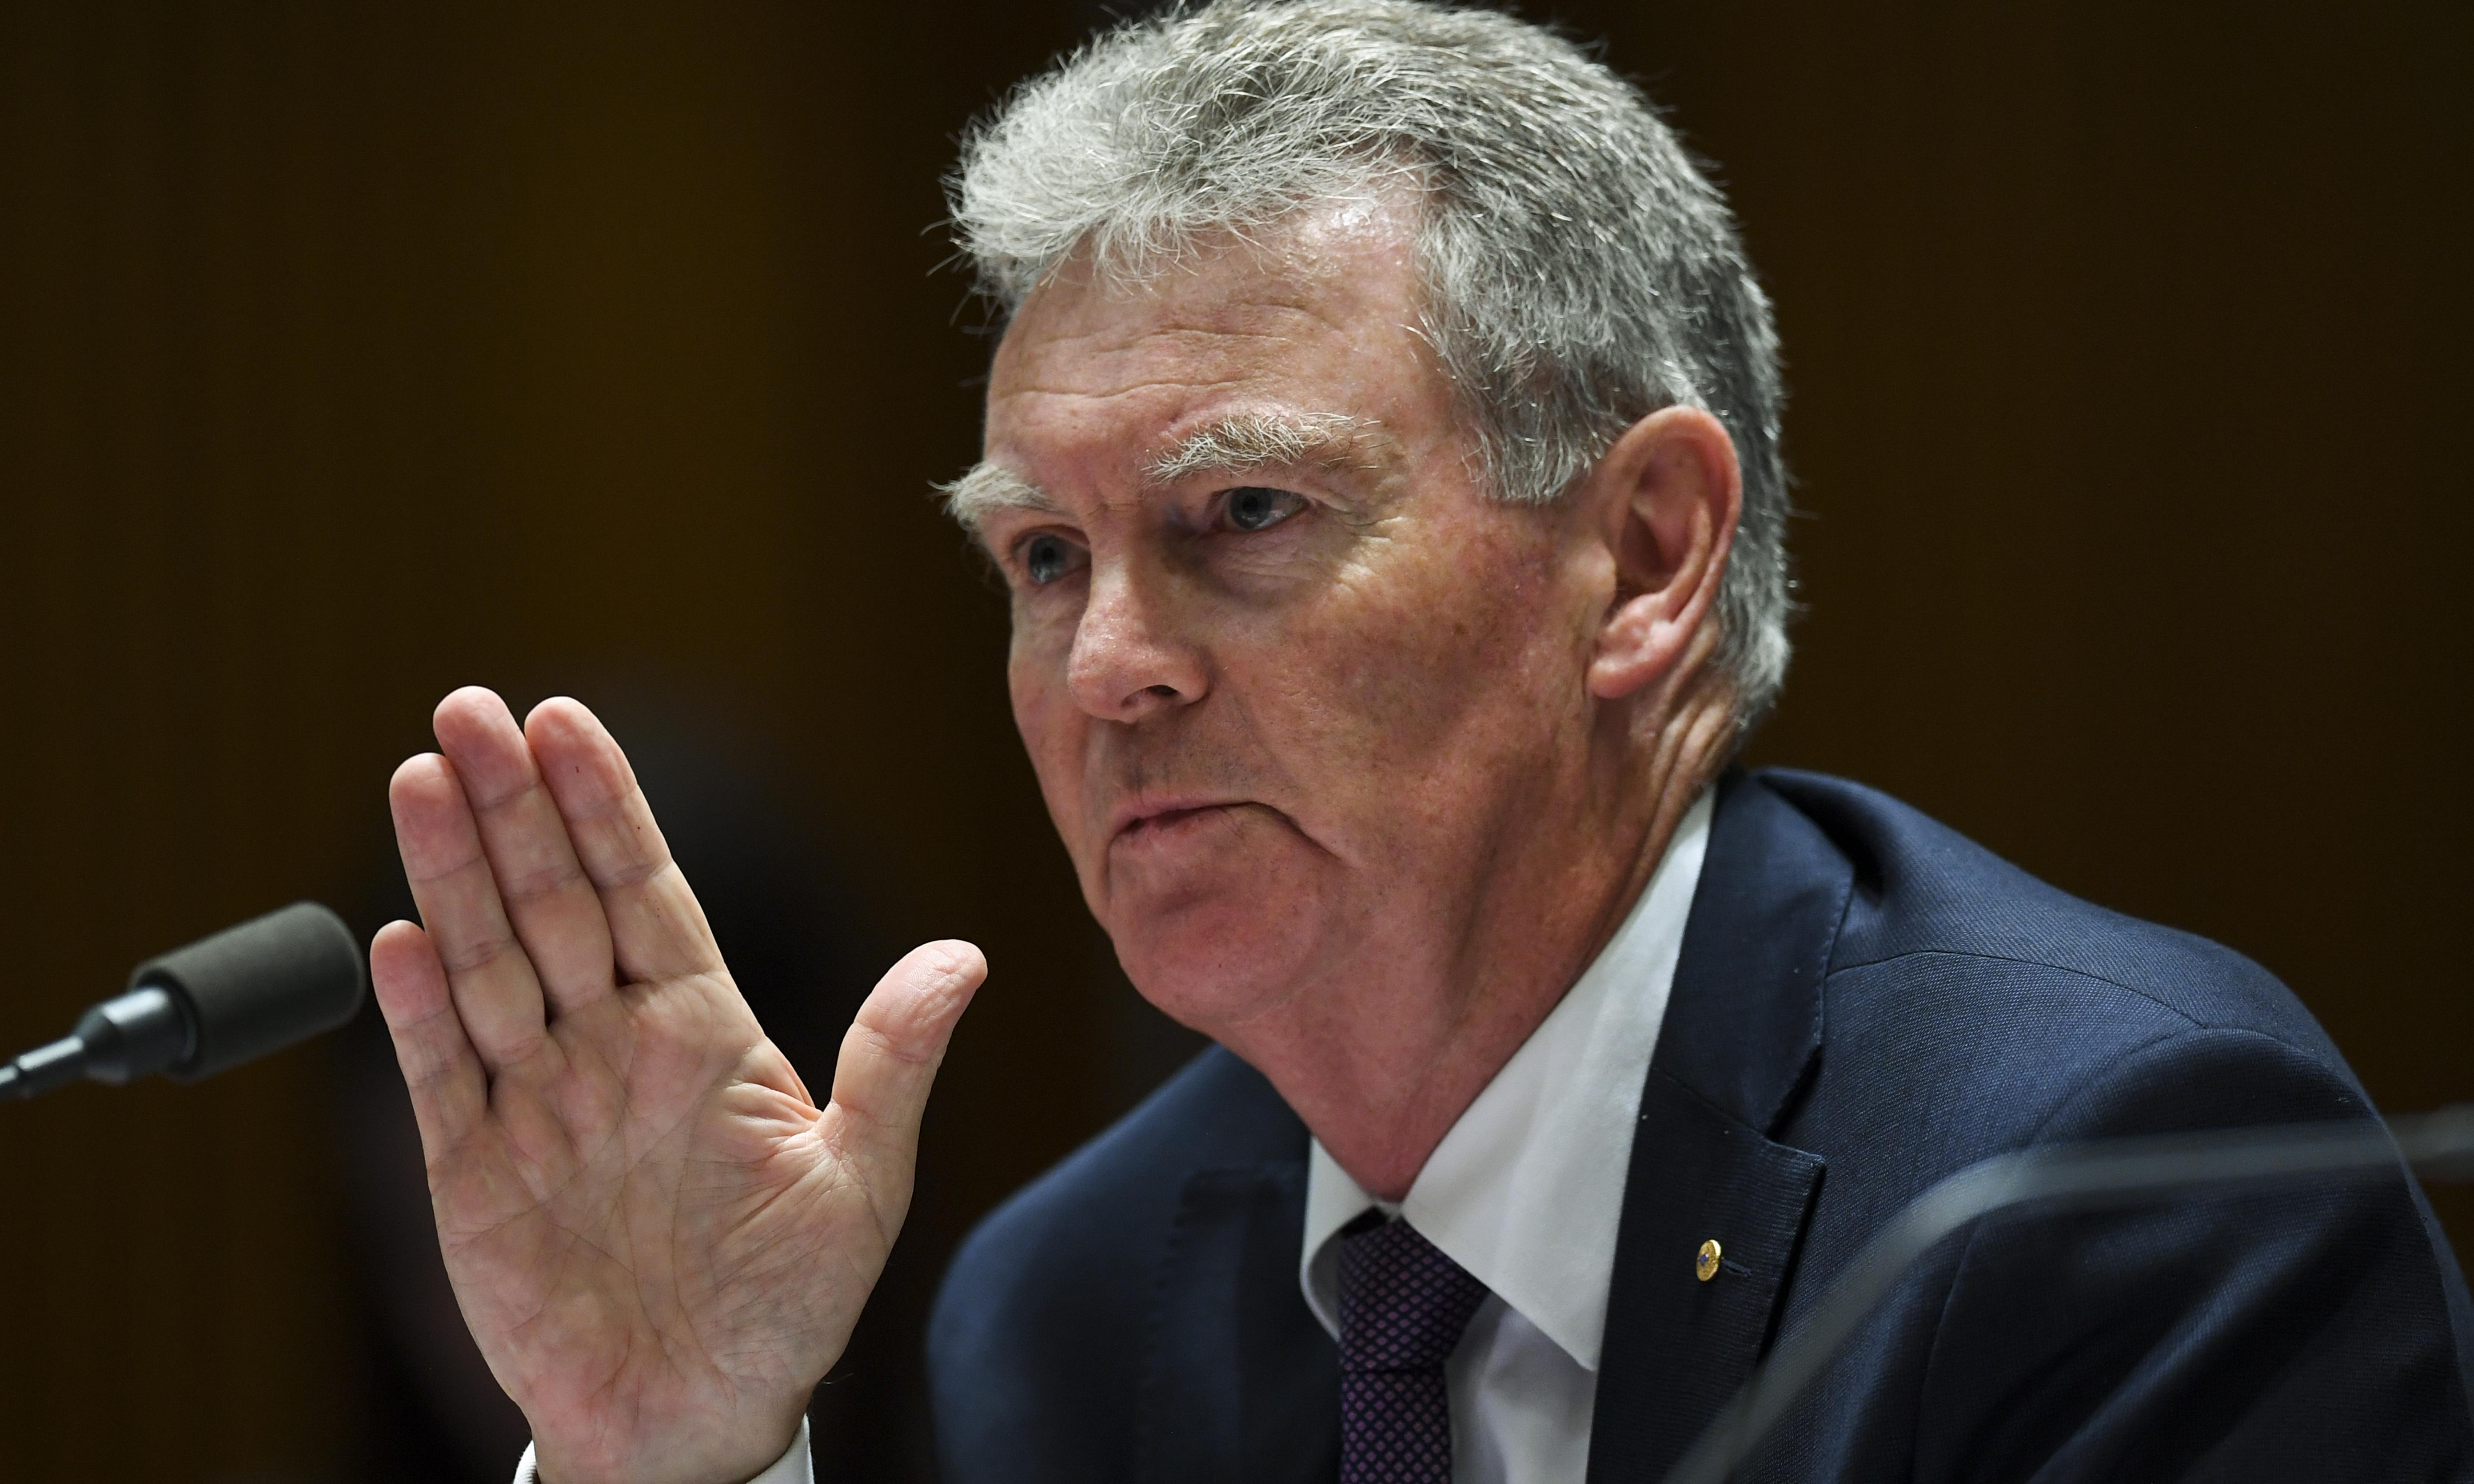 Asio chief warns against sharing officer's name on social media after Queensland blunder